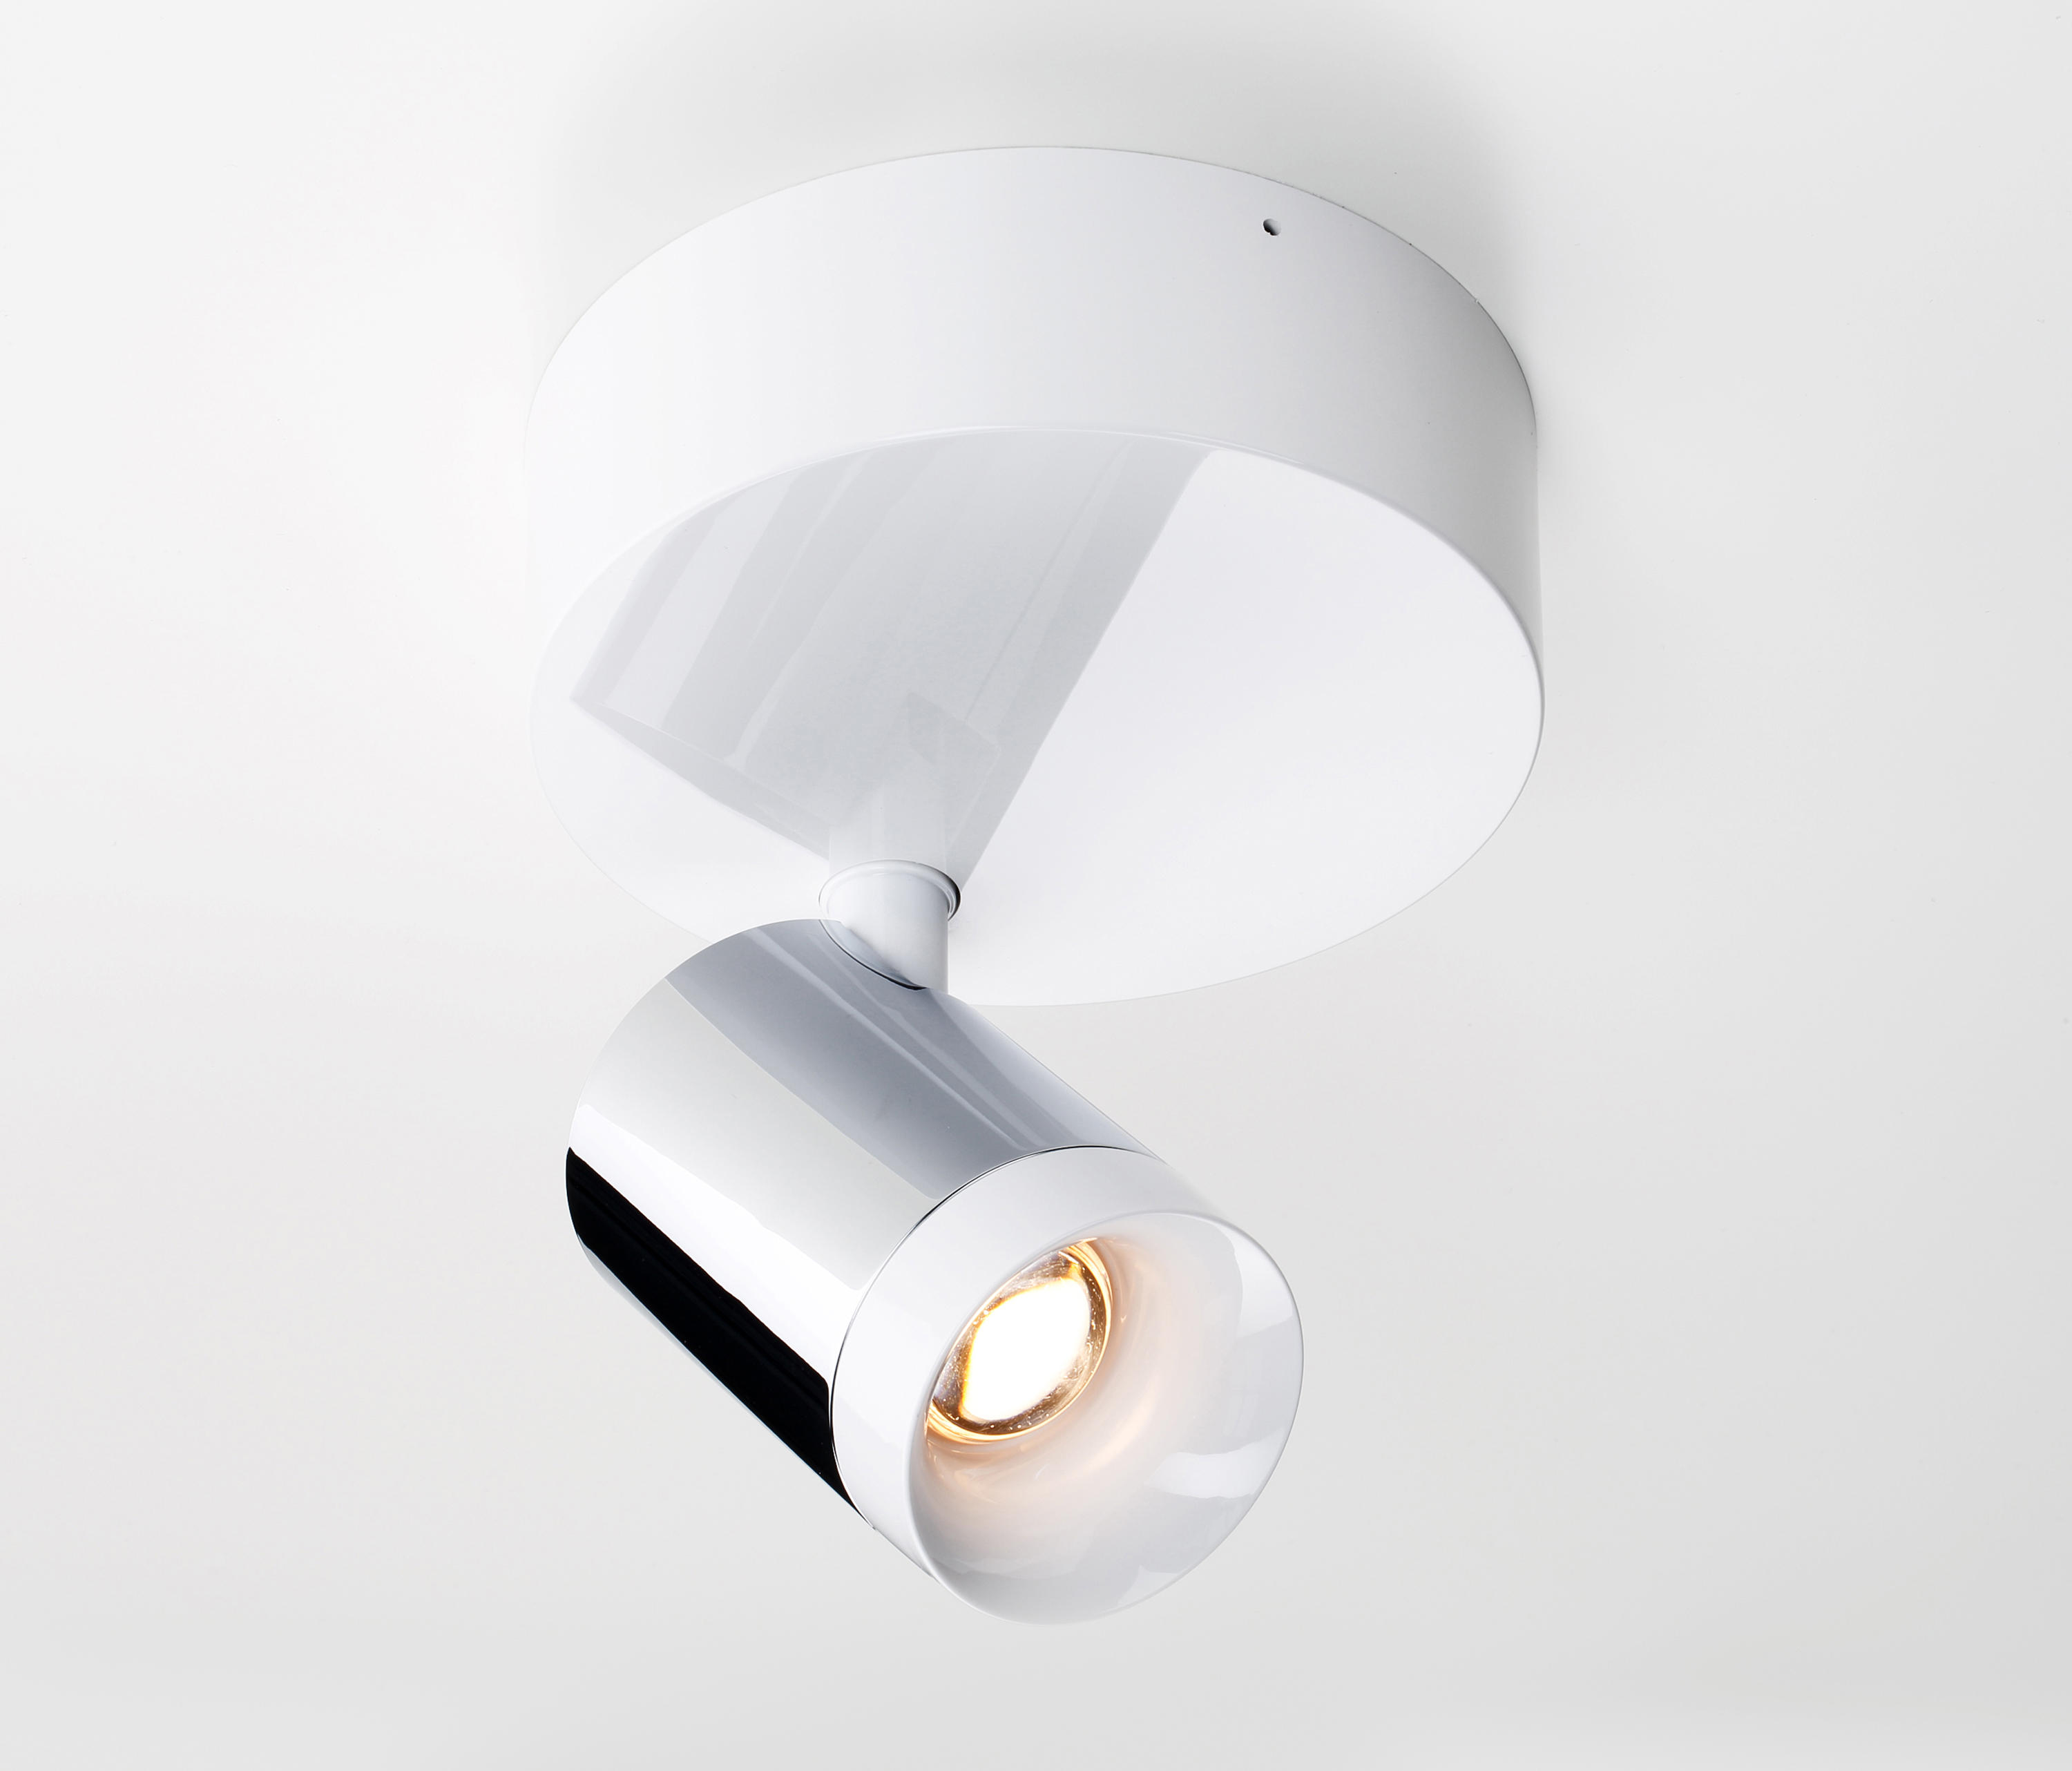 Tobias Grau Spot set in chrome white ceiling mounted spotlights from tobias grau